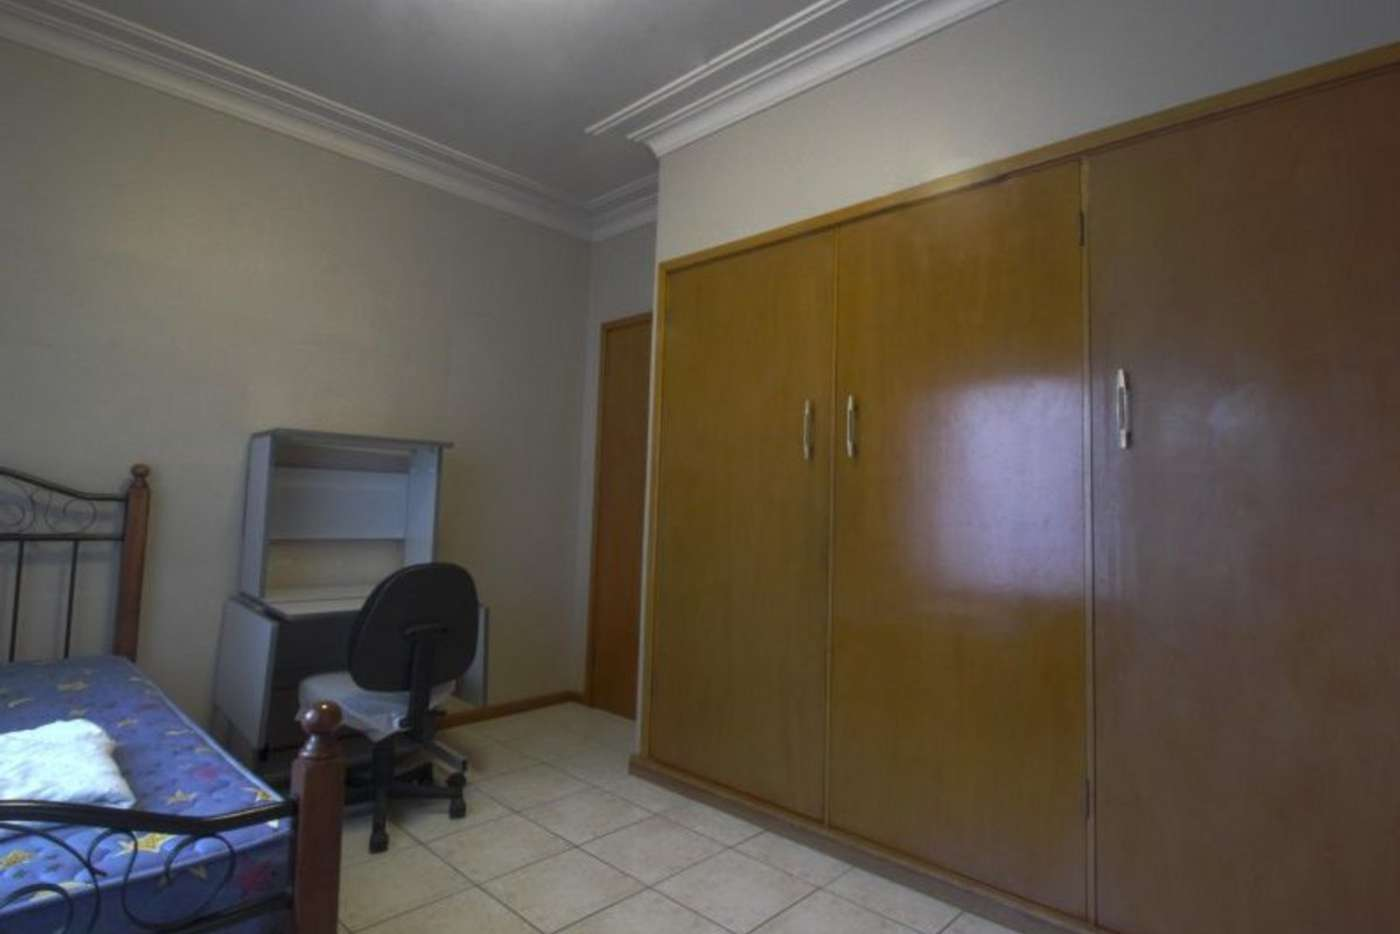 Main view of Homely other listing, Room 4/12 Georgina Avenue, Keiraville NSW 2500